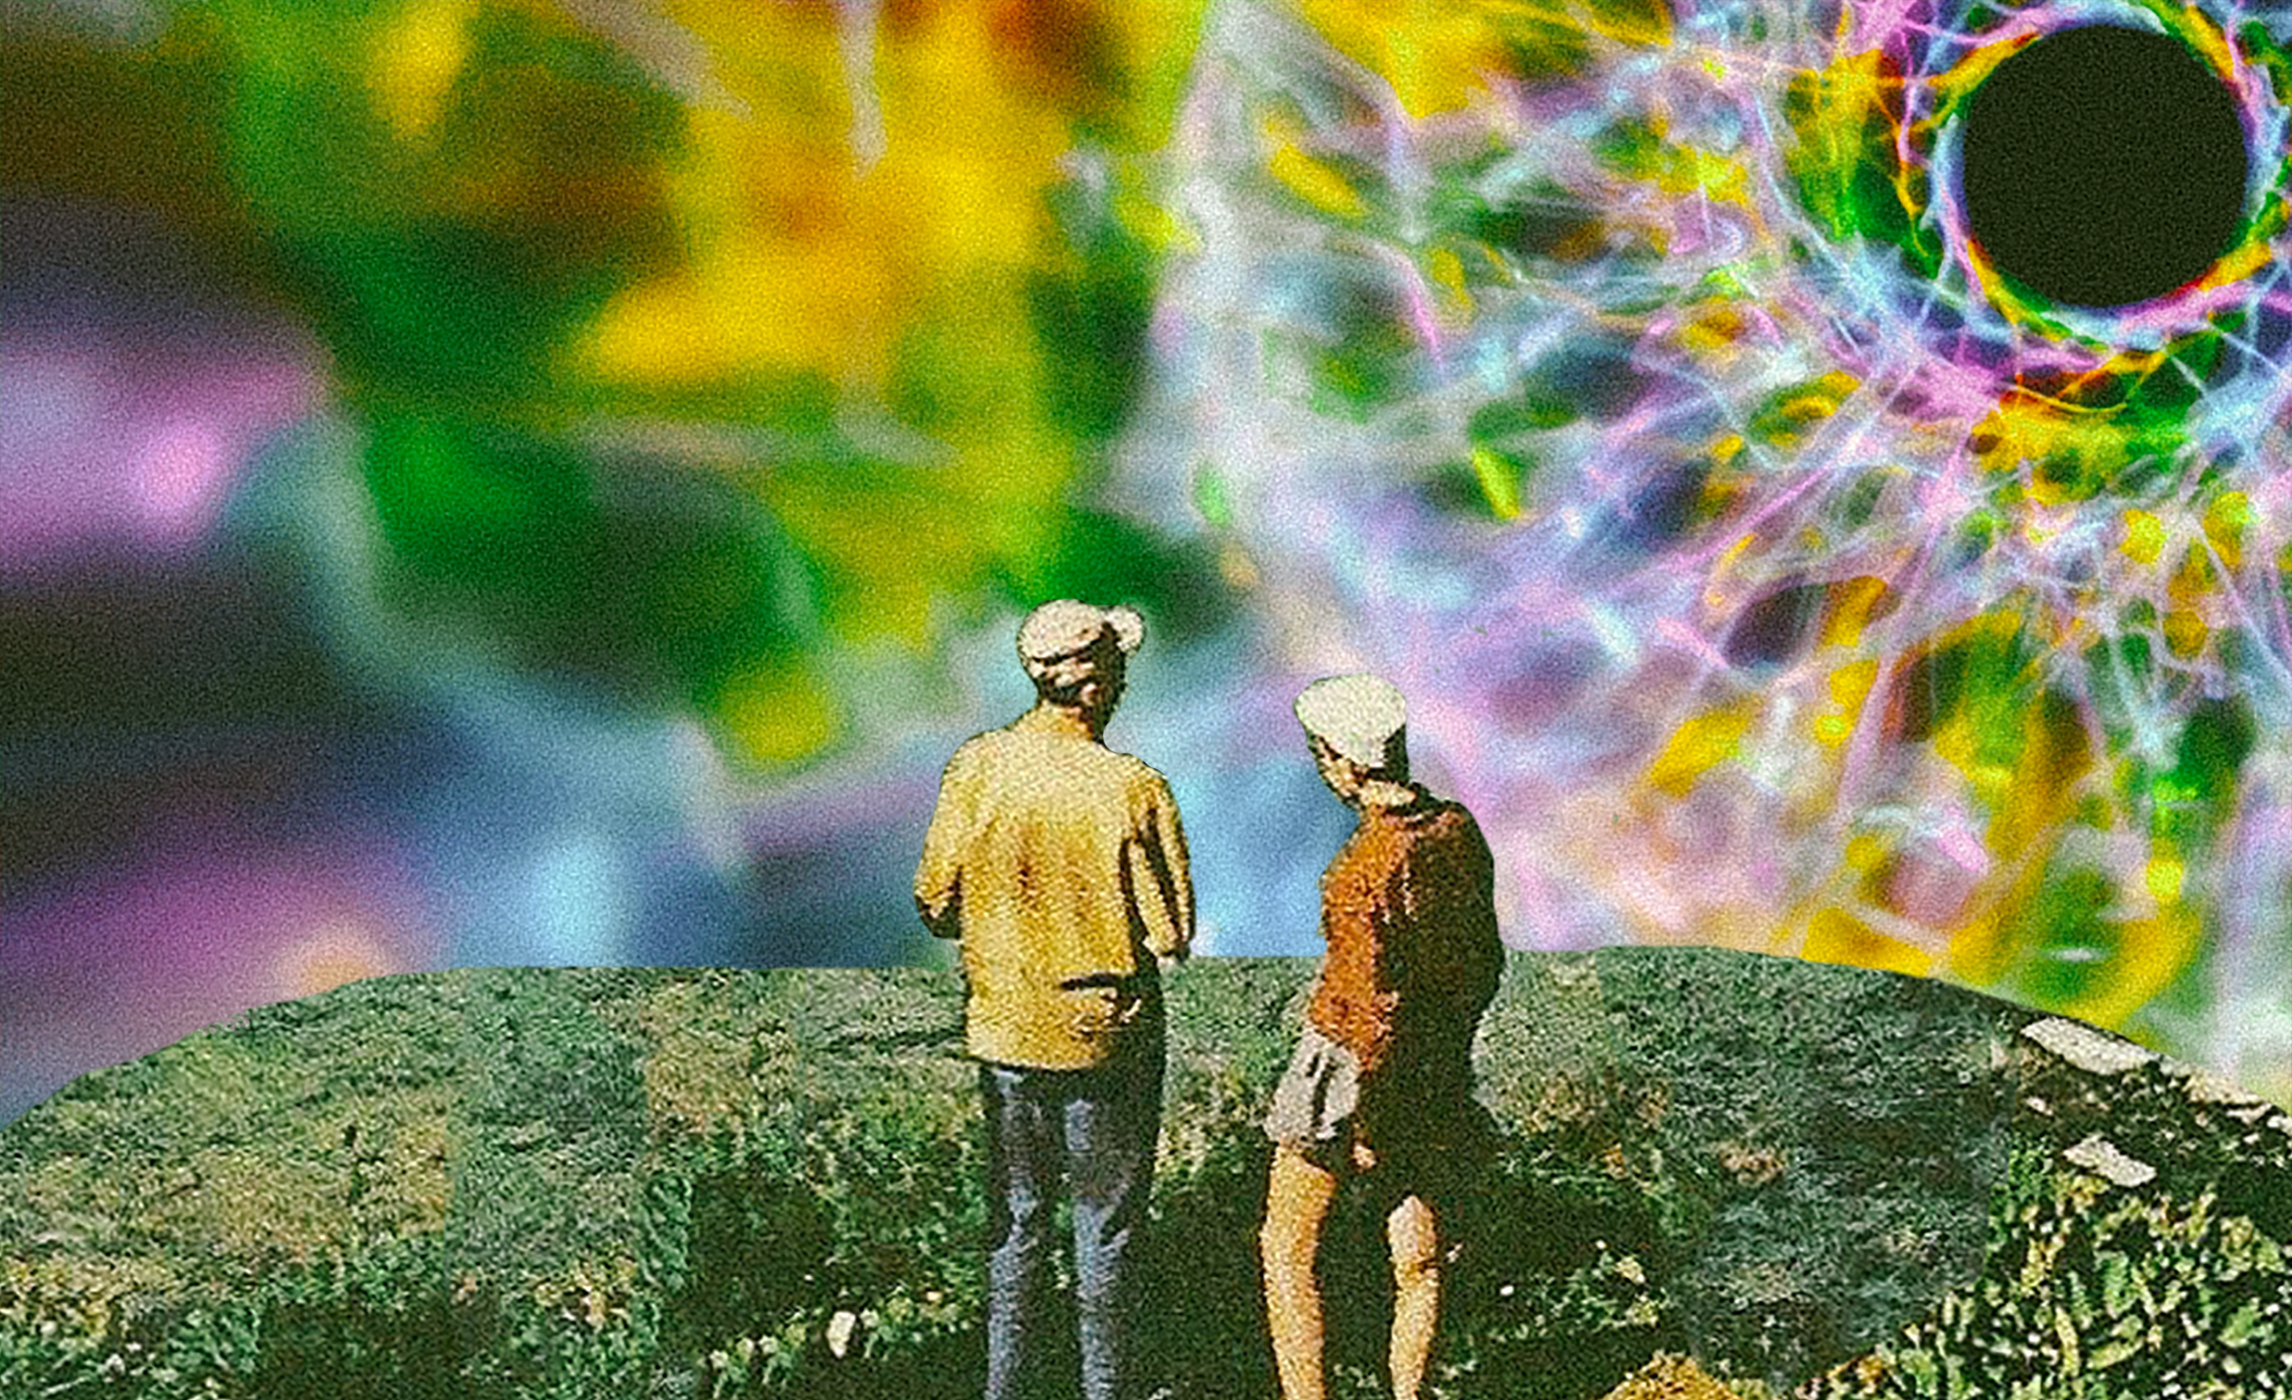 professional trip sitters have advice for people taking Acid Trip Artwork professional trip sitters have advice for people taking psychedelic drugs vice